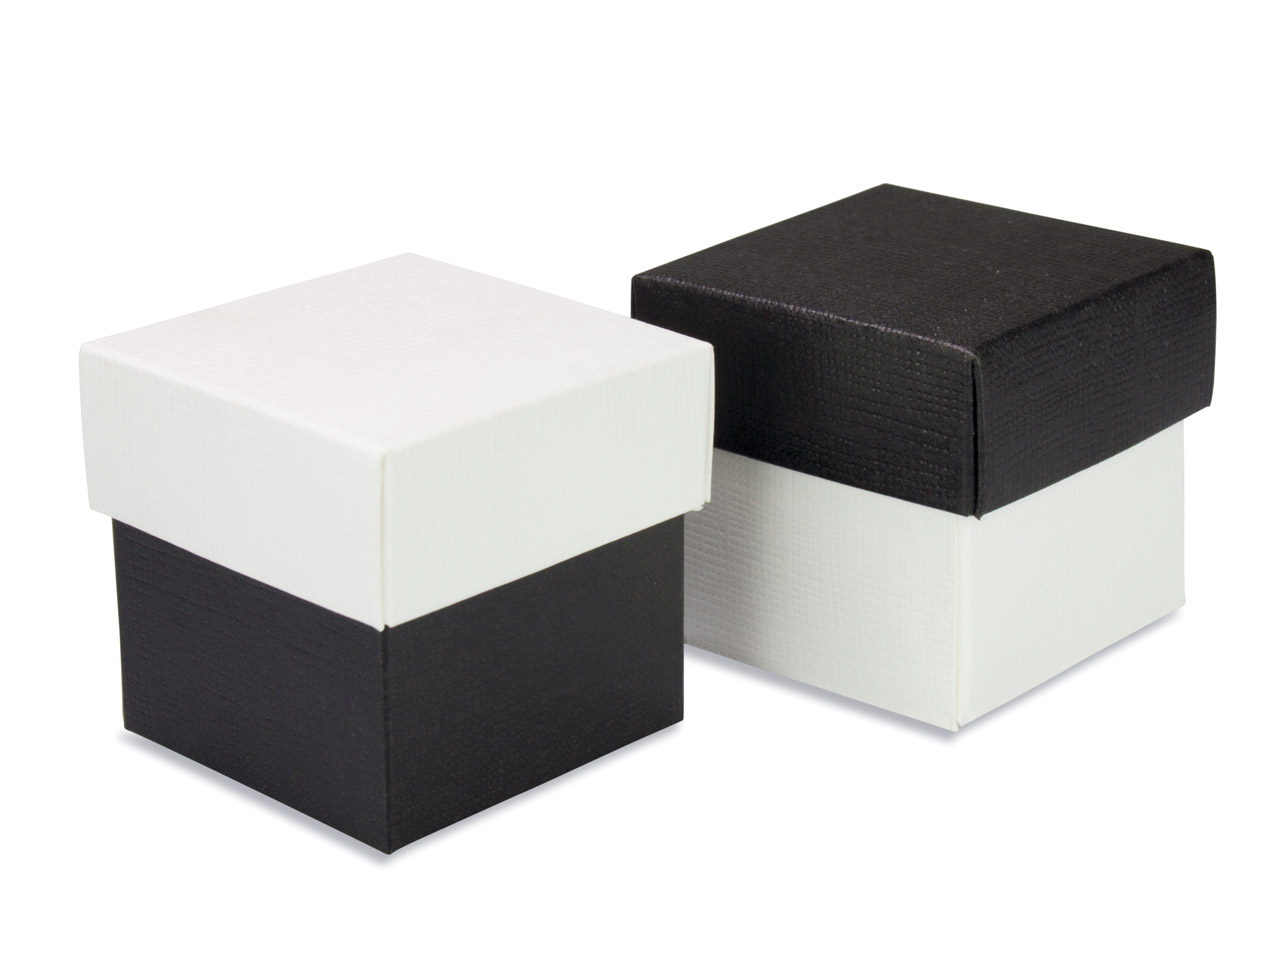 Flat Pack Square Box 2 Tone Black  And White Pack of 10